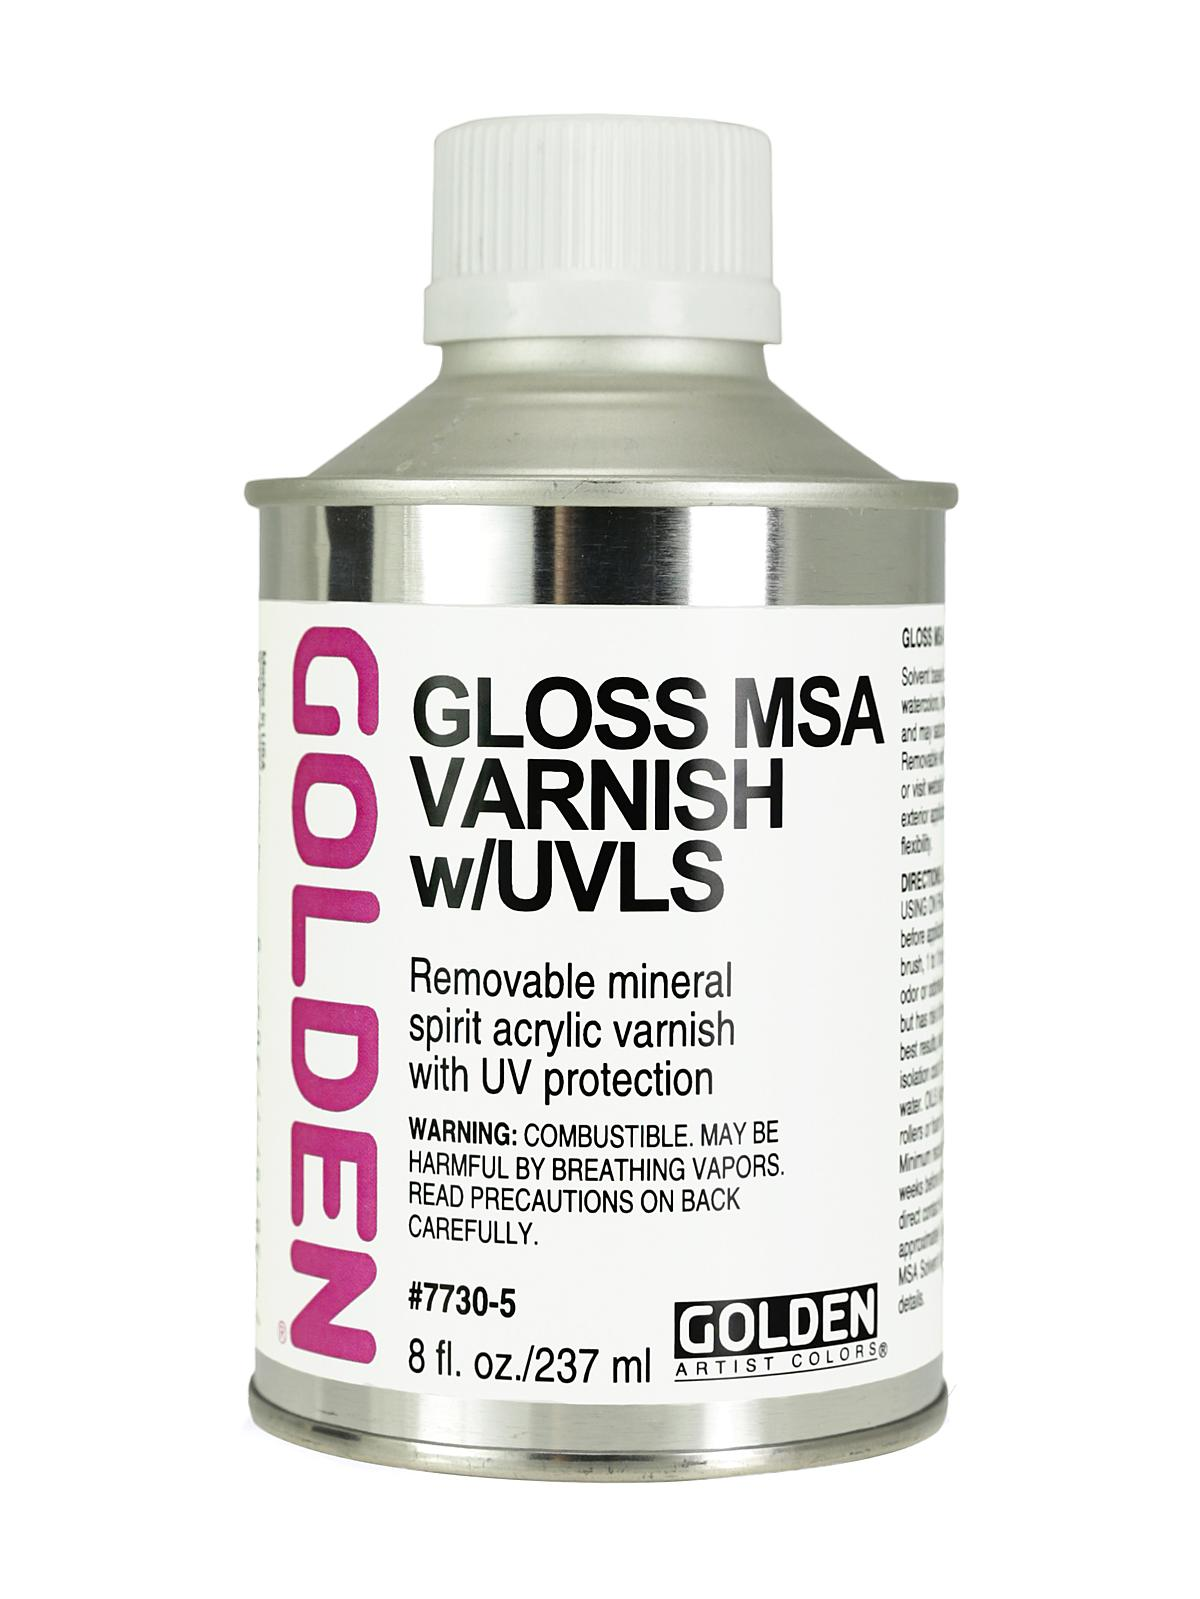 MSA (Mineral Spirit Acrylic) Varnish with UVLS